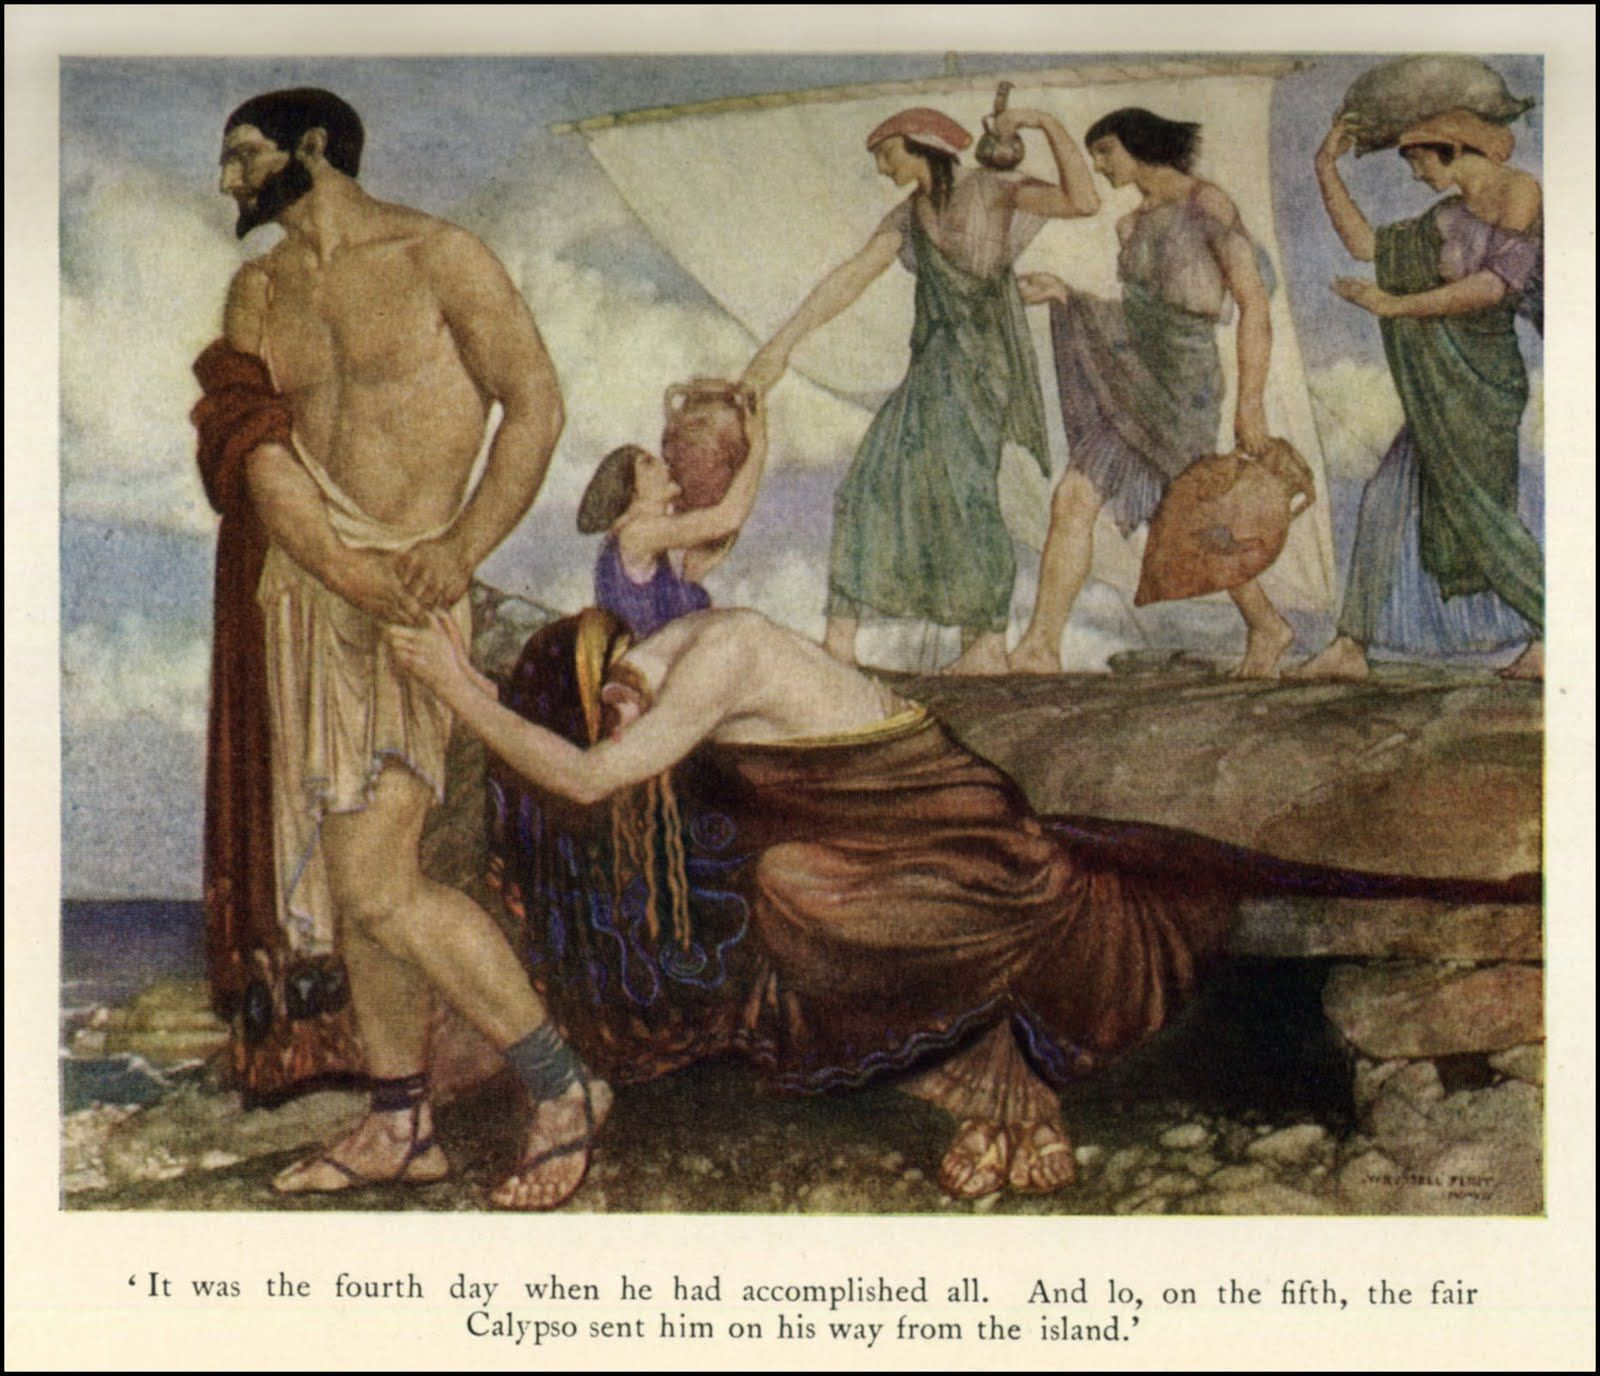 the islands of circe and calypso as the main settings of homers challenging troubles in odyssey Free summary and analysis of book 4 in homer's the odyssey that won't when menelaos was stranded on the island of has died for foolishly challenging the.